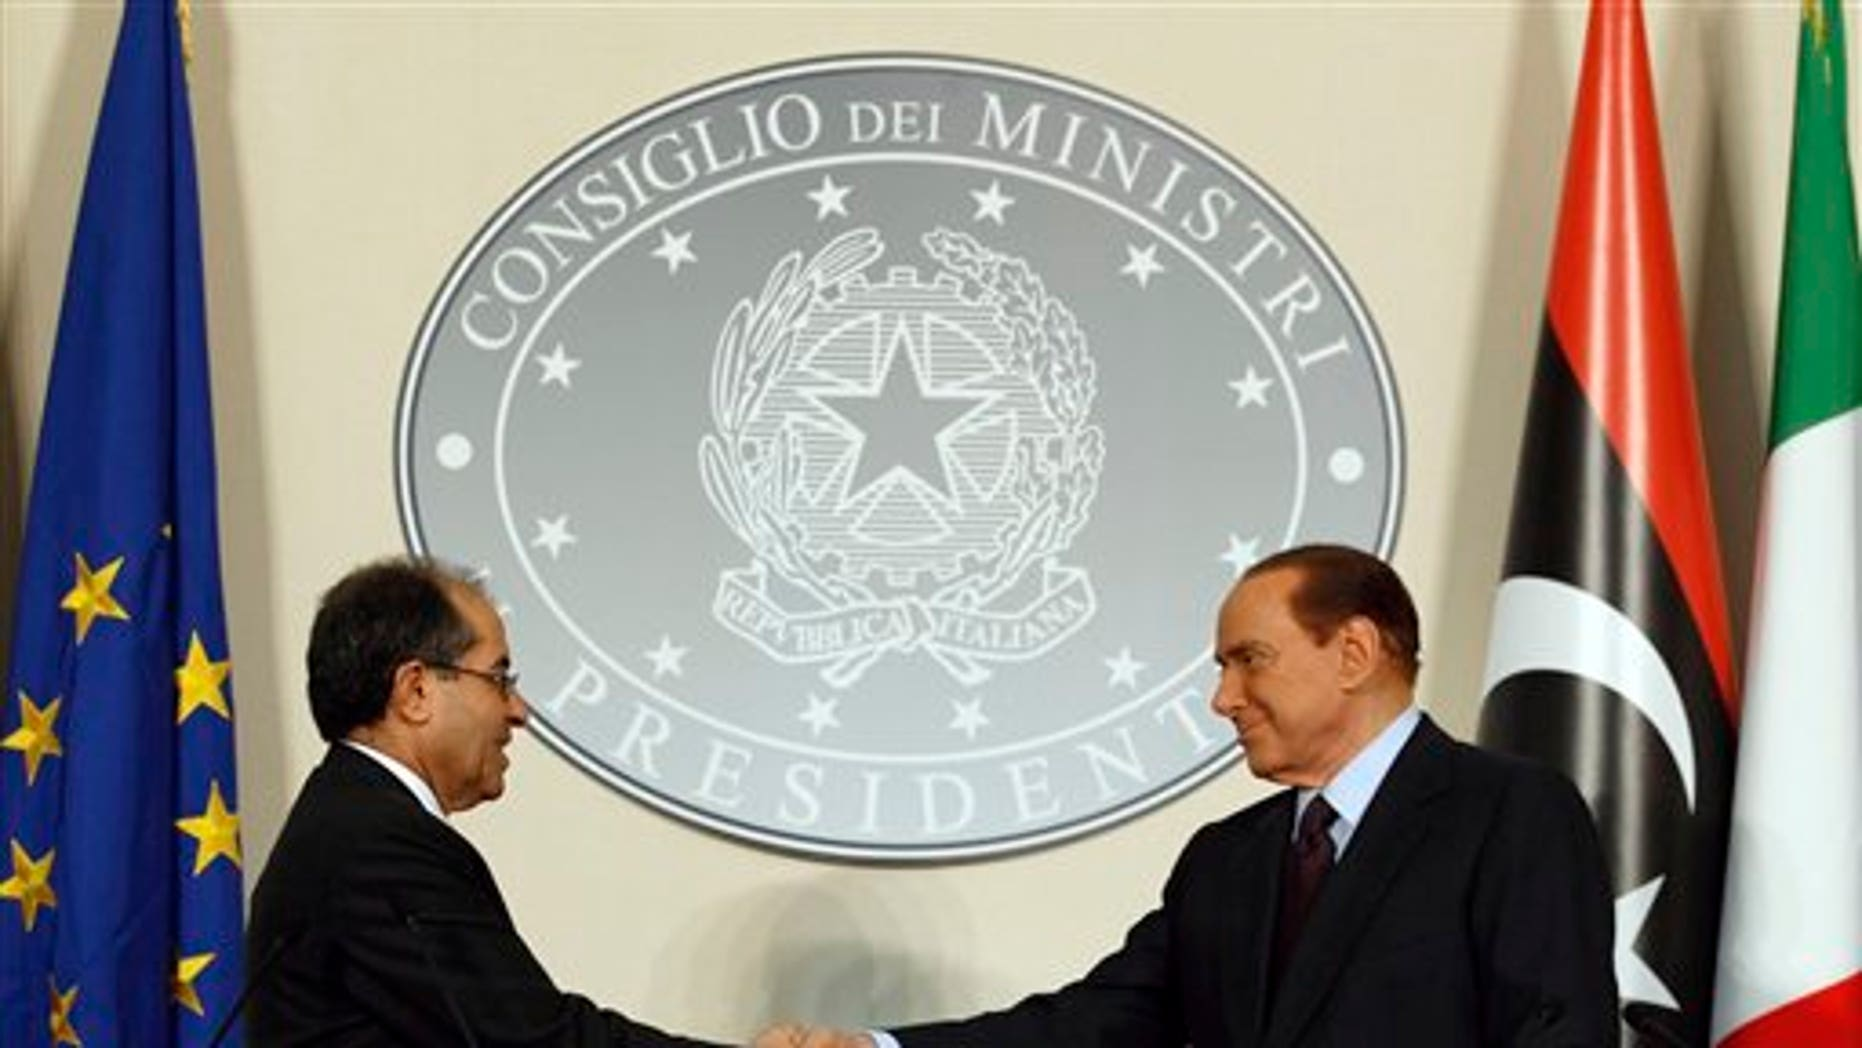 August 25: Italian premier Silvio Berlusconi, right, shakes hands with Mahmoud Jibril, deputy chairman of the Libyan National Transitional Council, during their meeting at the prefecture building in Milan, Italy.